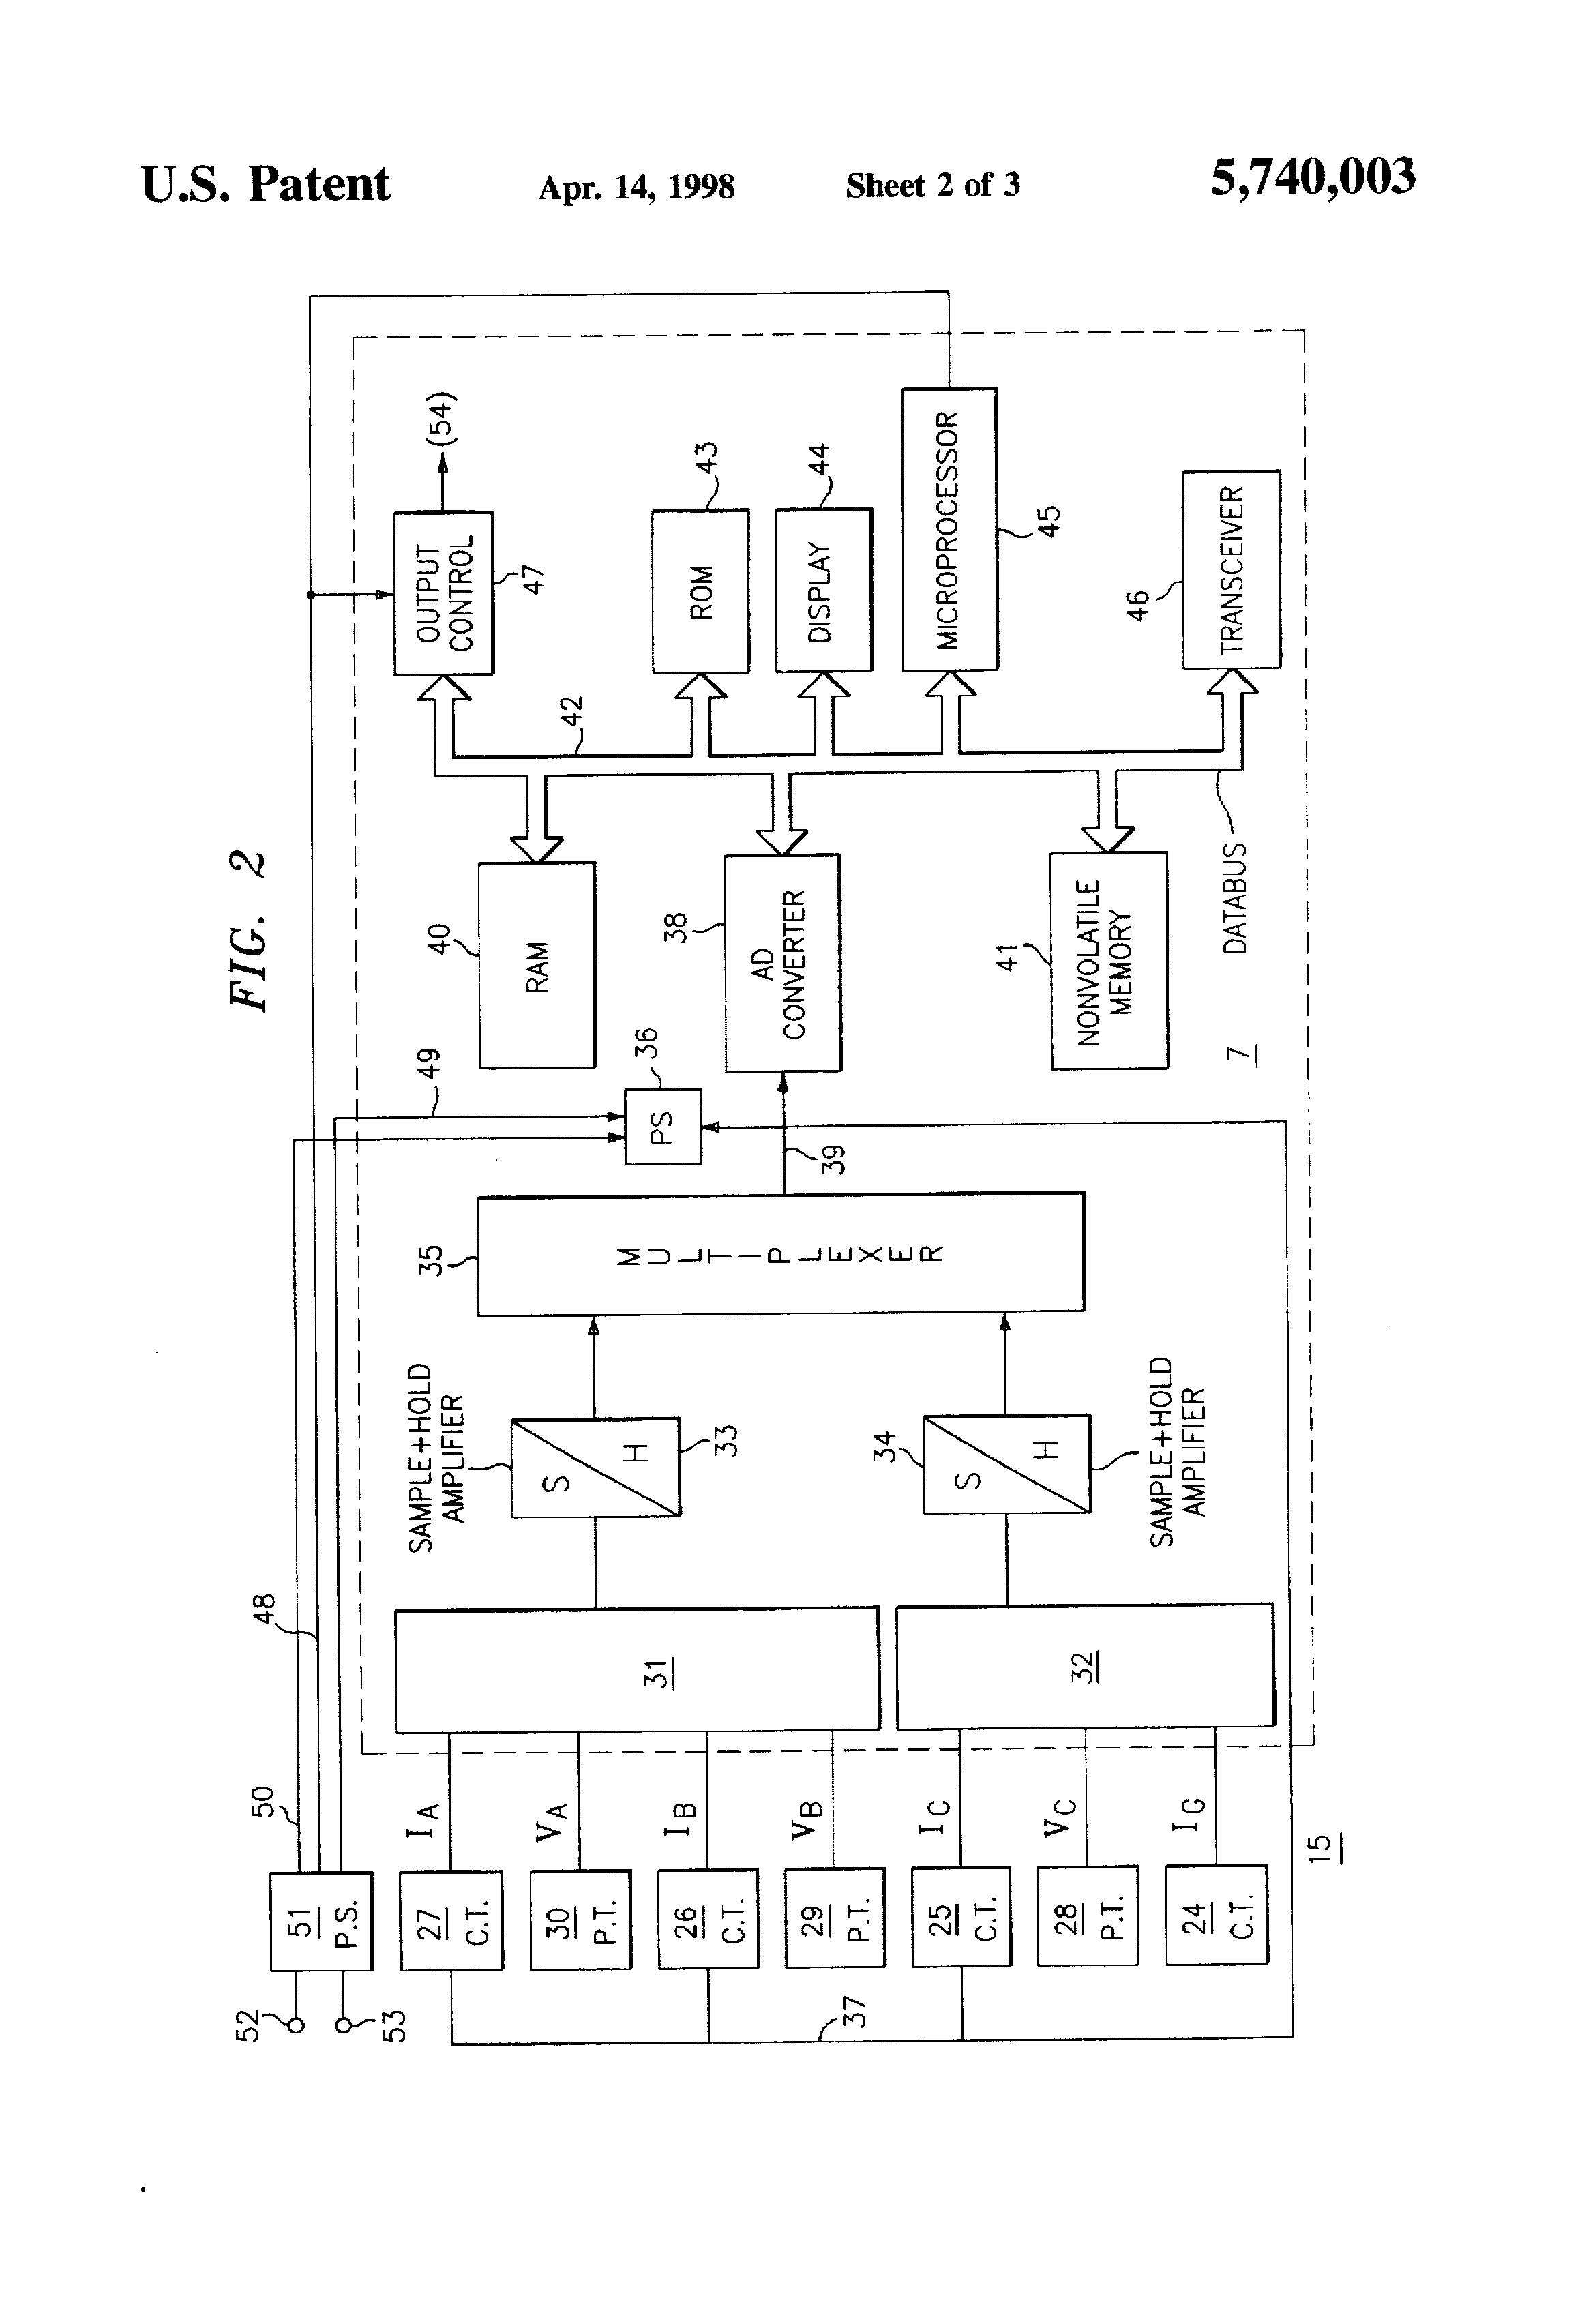 elevator shunt trip breaker wiring diagram elevator discover shunt trip wiring diagram data center